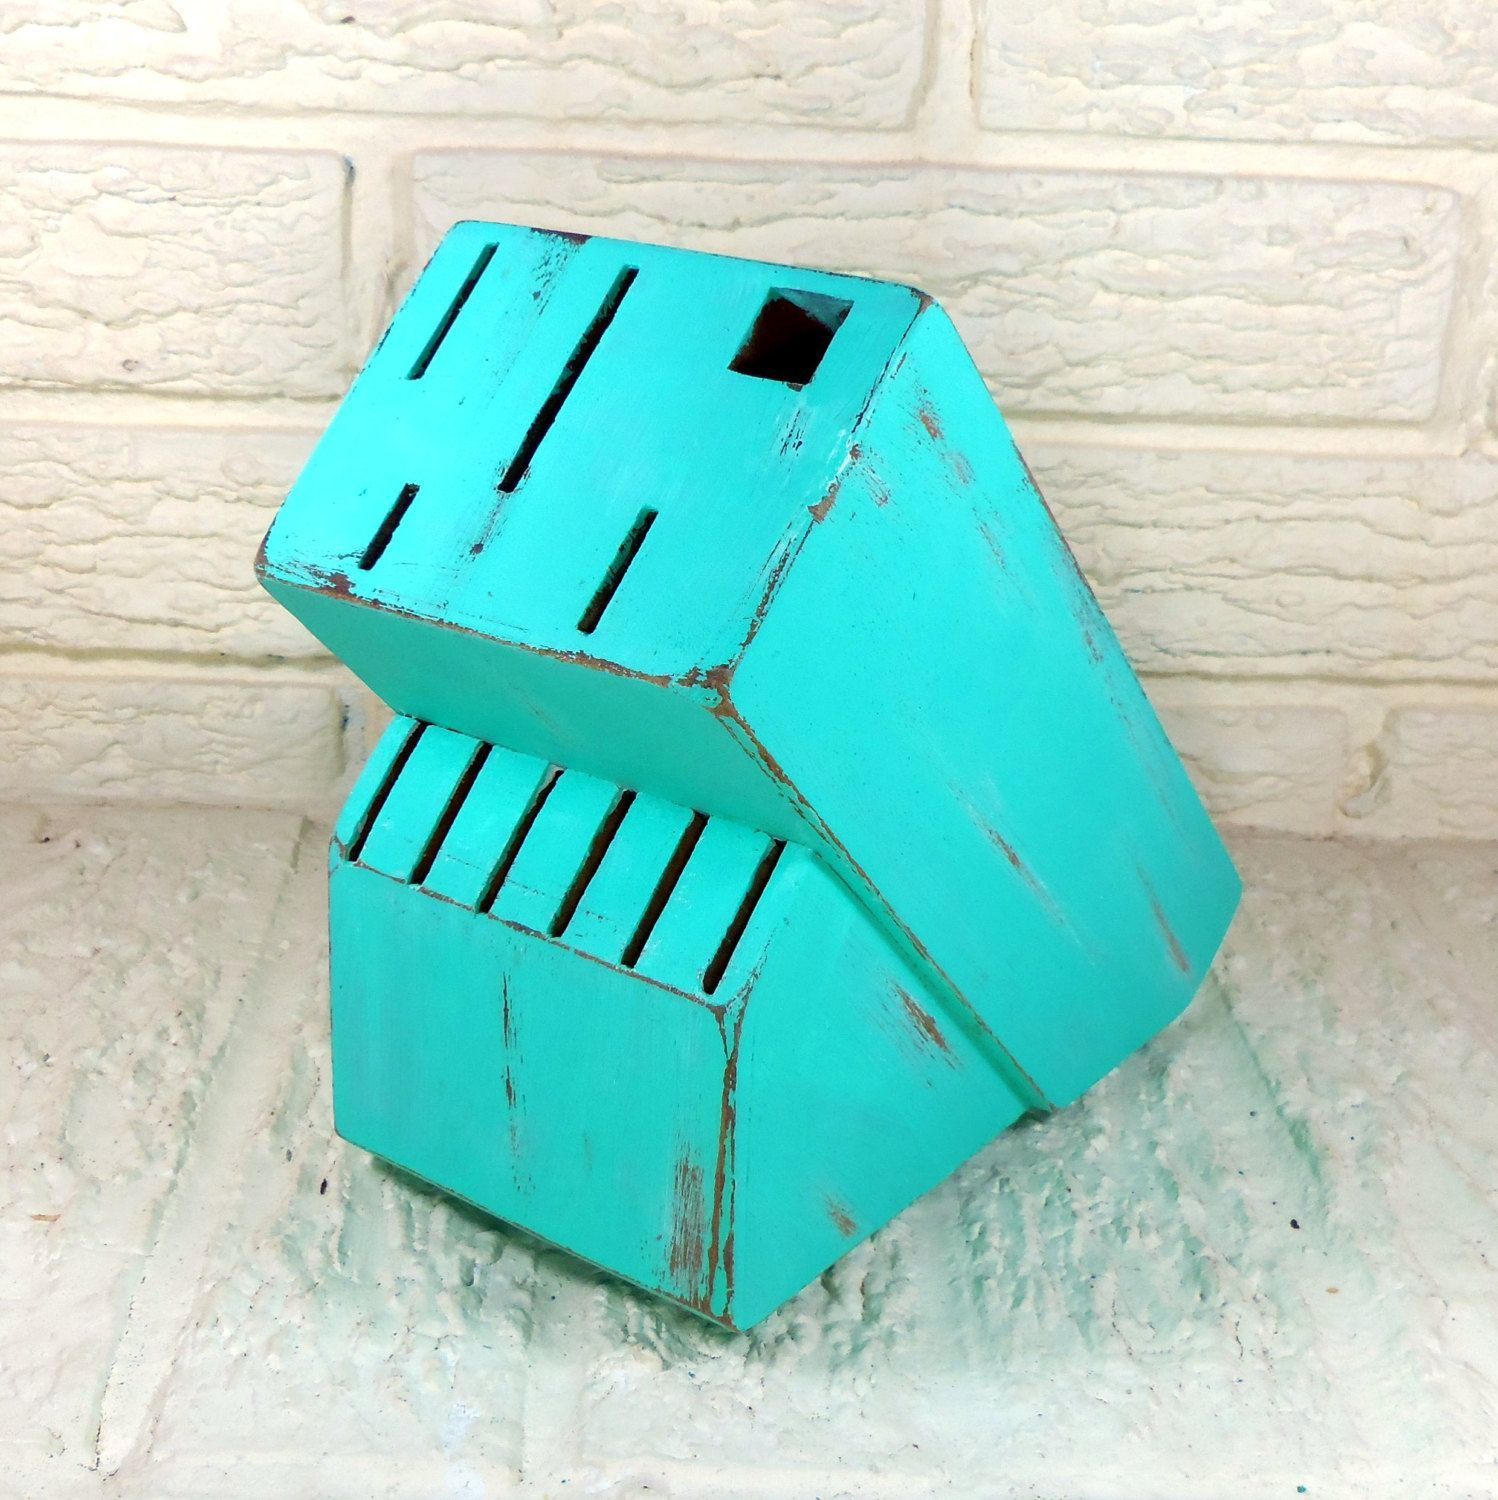 Turquoise Green Wooden Knife Block Shabby Chic Kitchen By Poelia,